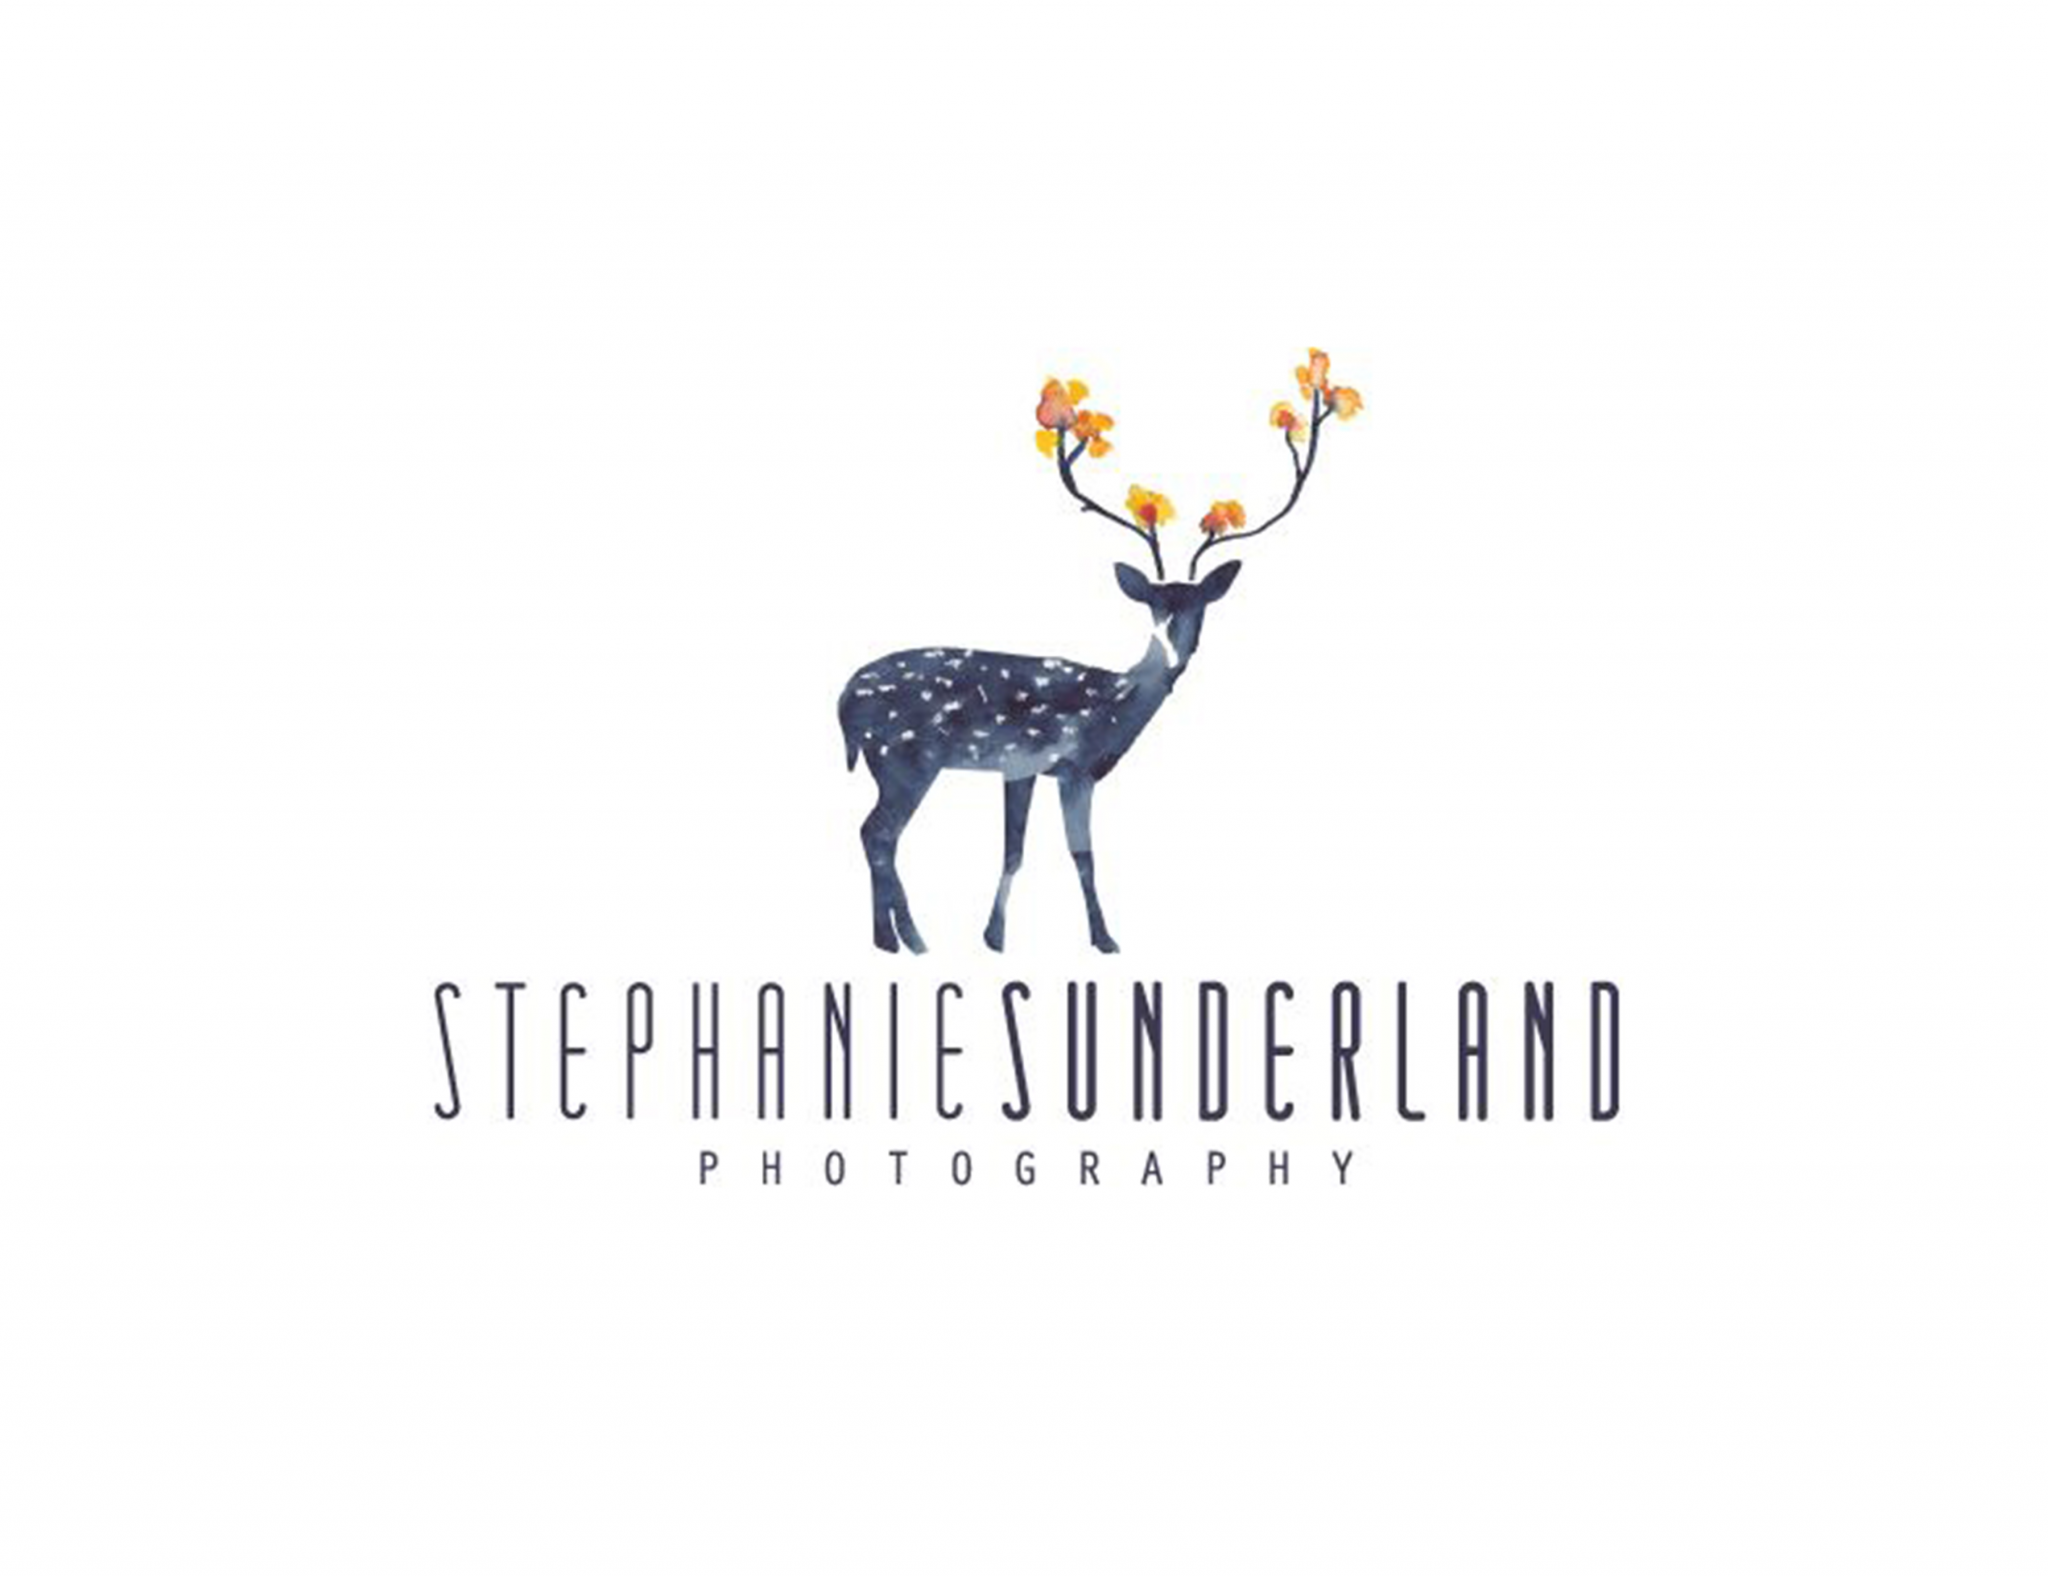 Stephanie Sunderland Logo Photography Logodear Flowers Watercolor Graphic White Background